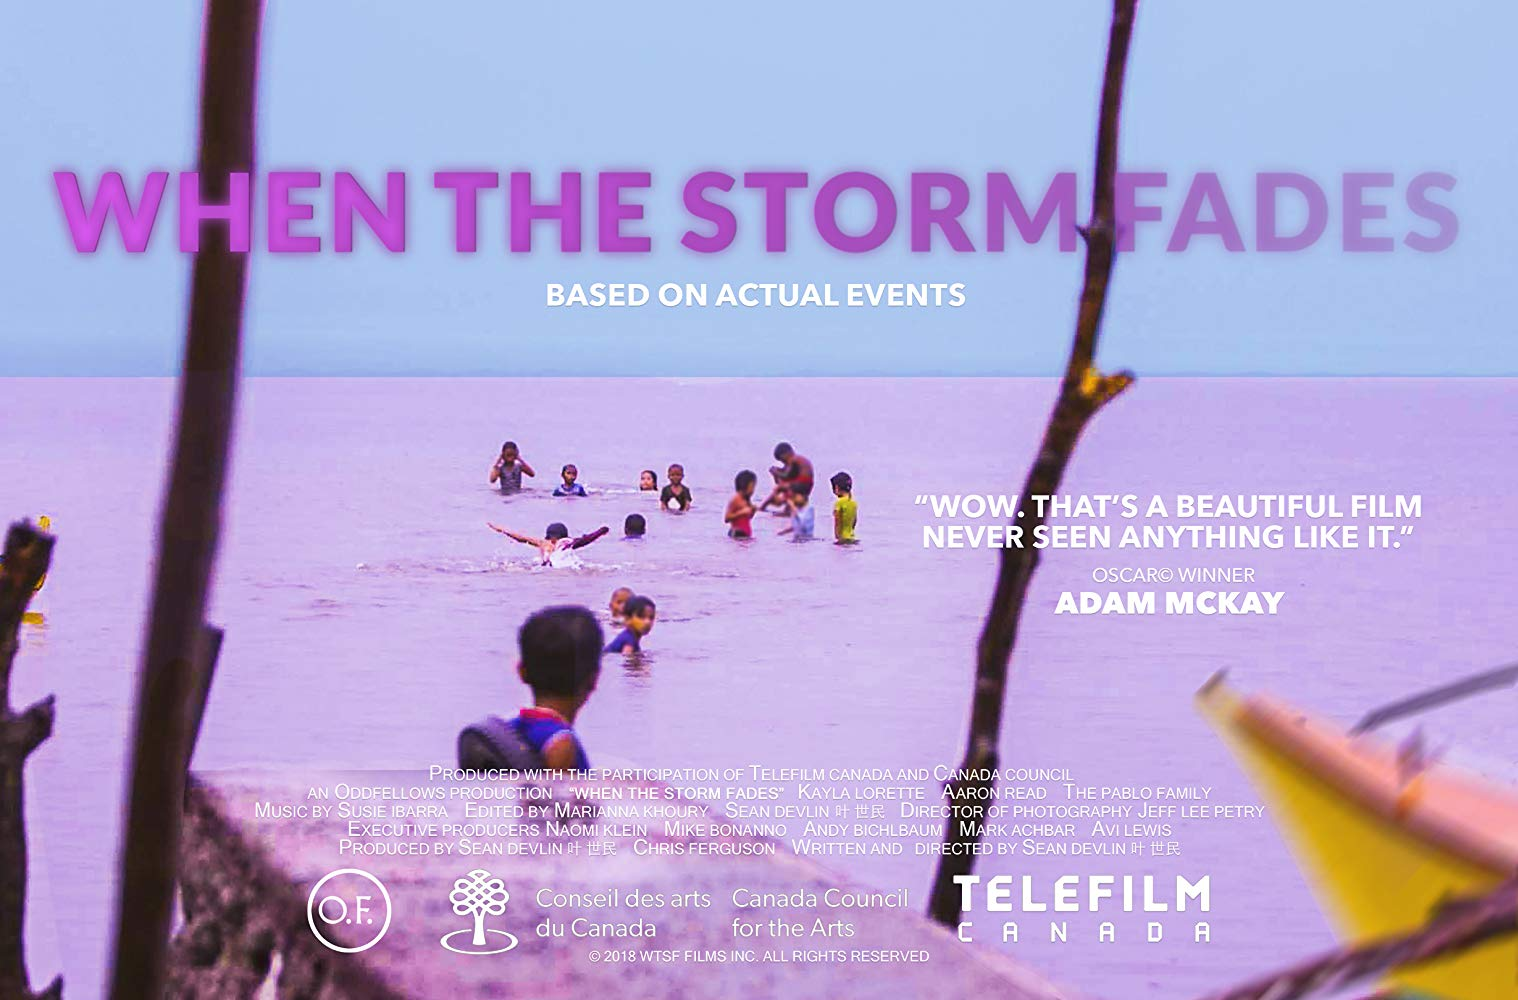 poster of when the storm fades